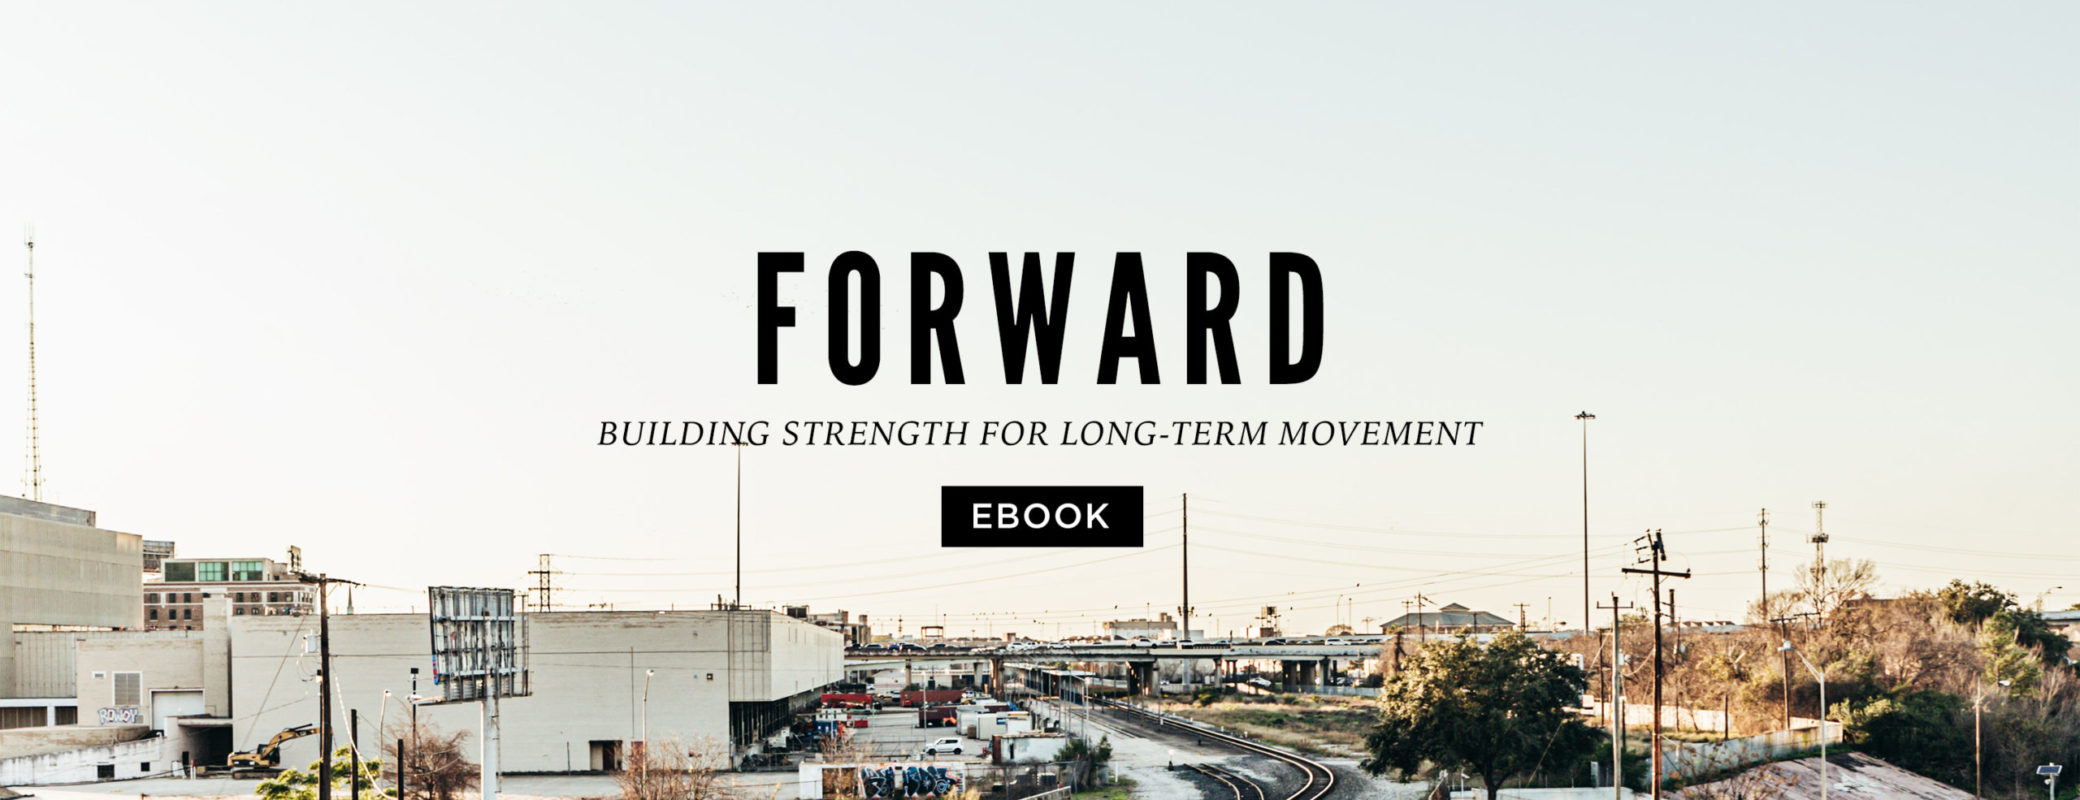 Building Strength For Long-Term Movement